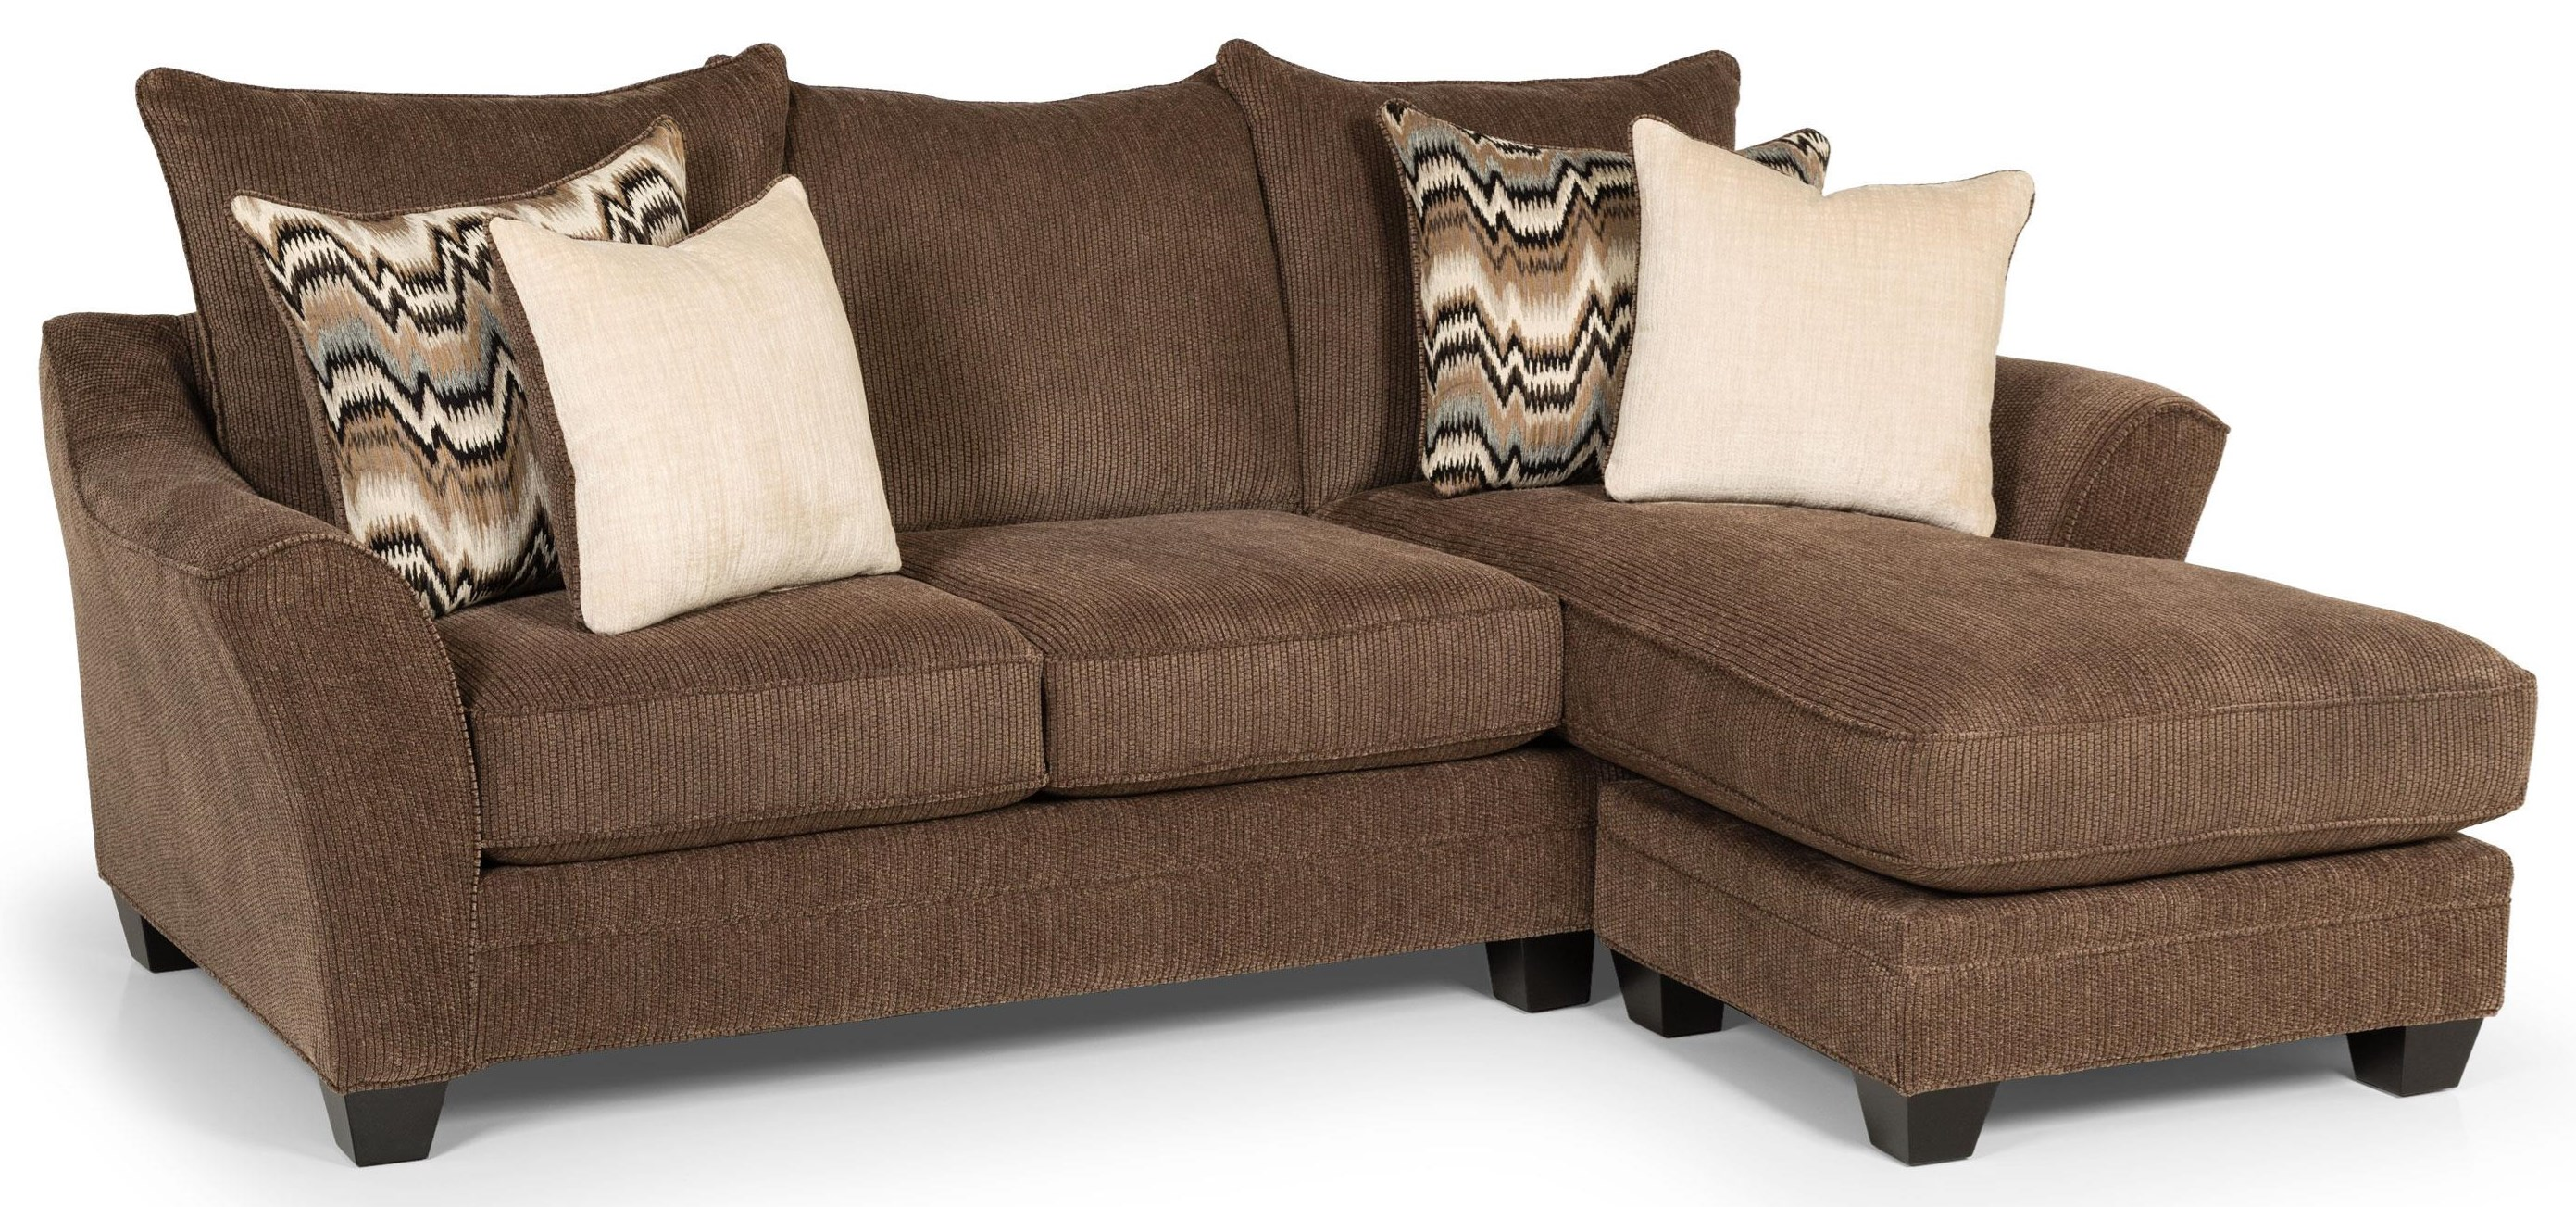 257 Sofa Chaise by Stanton at Rife's Home Furniture